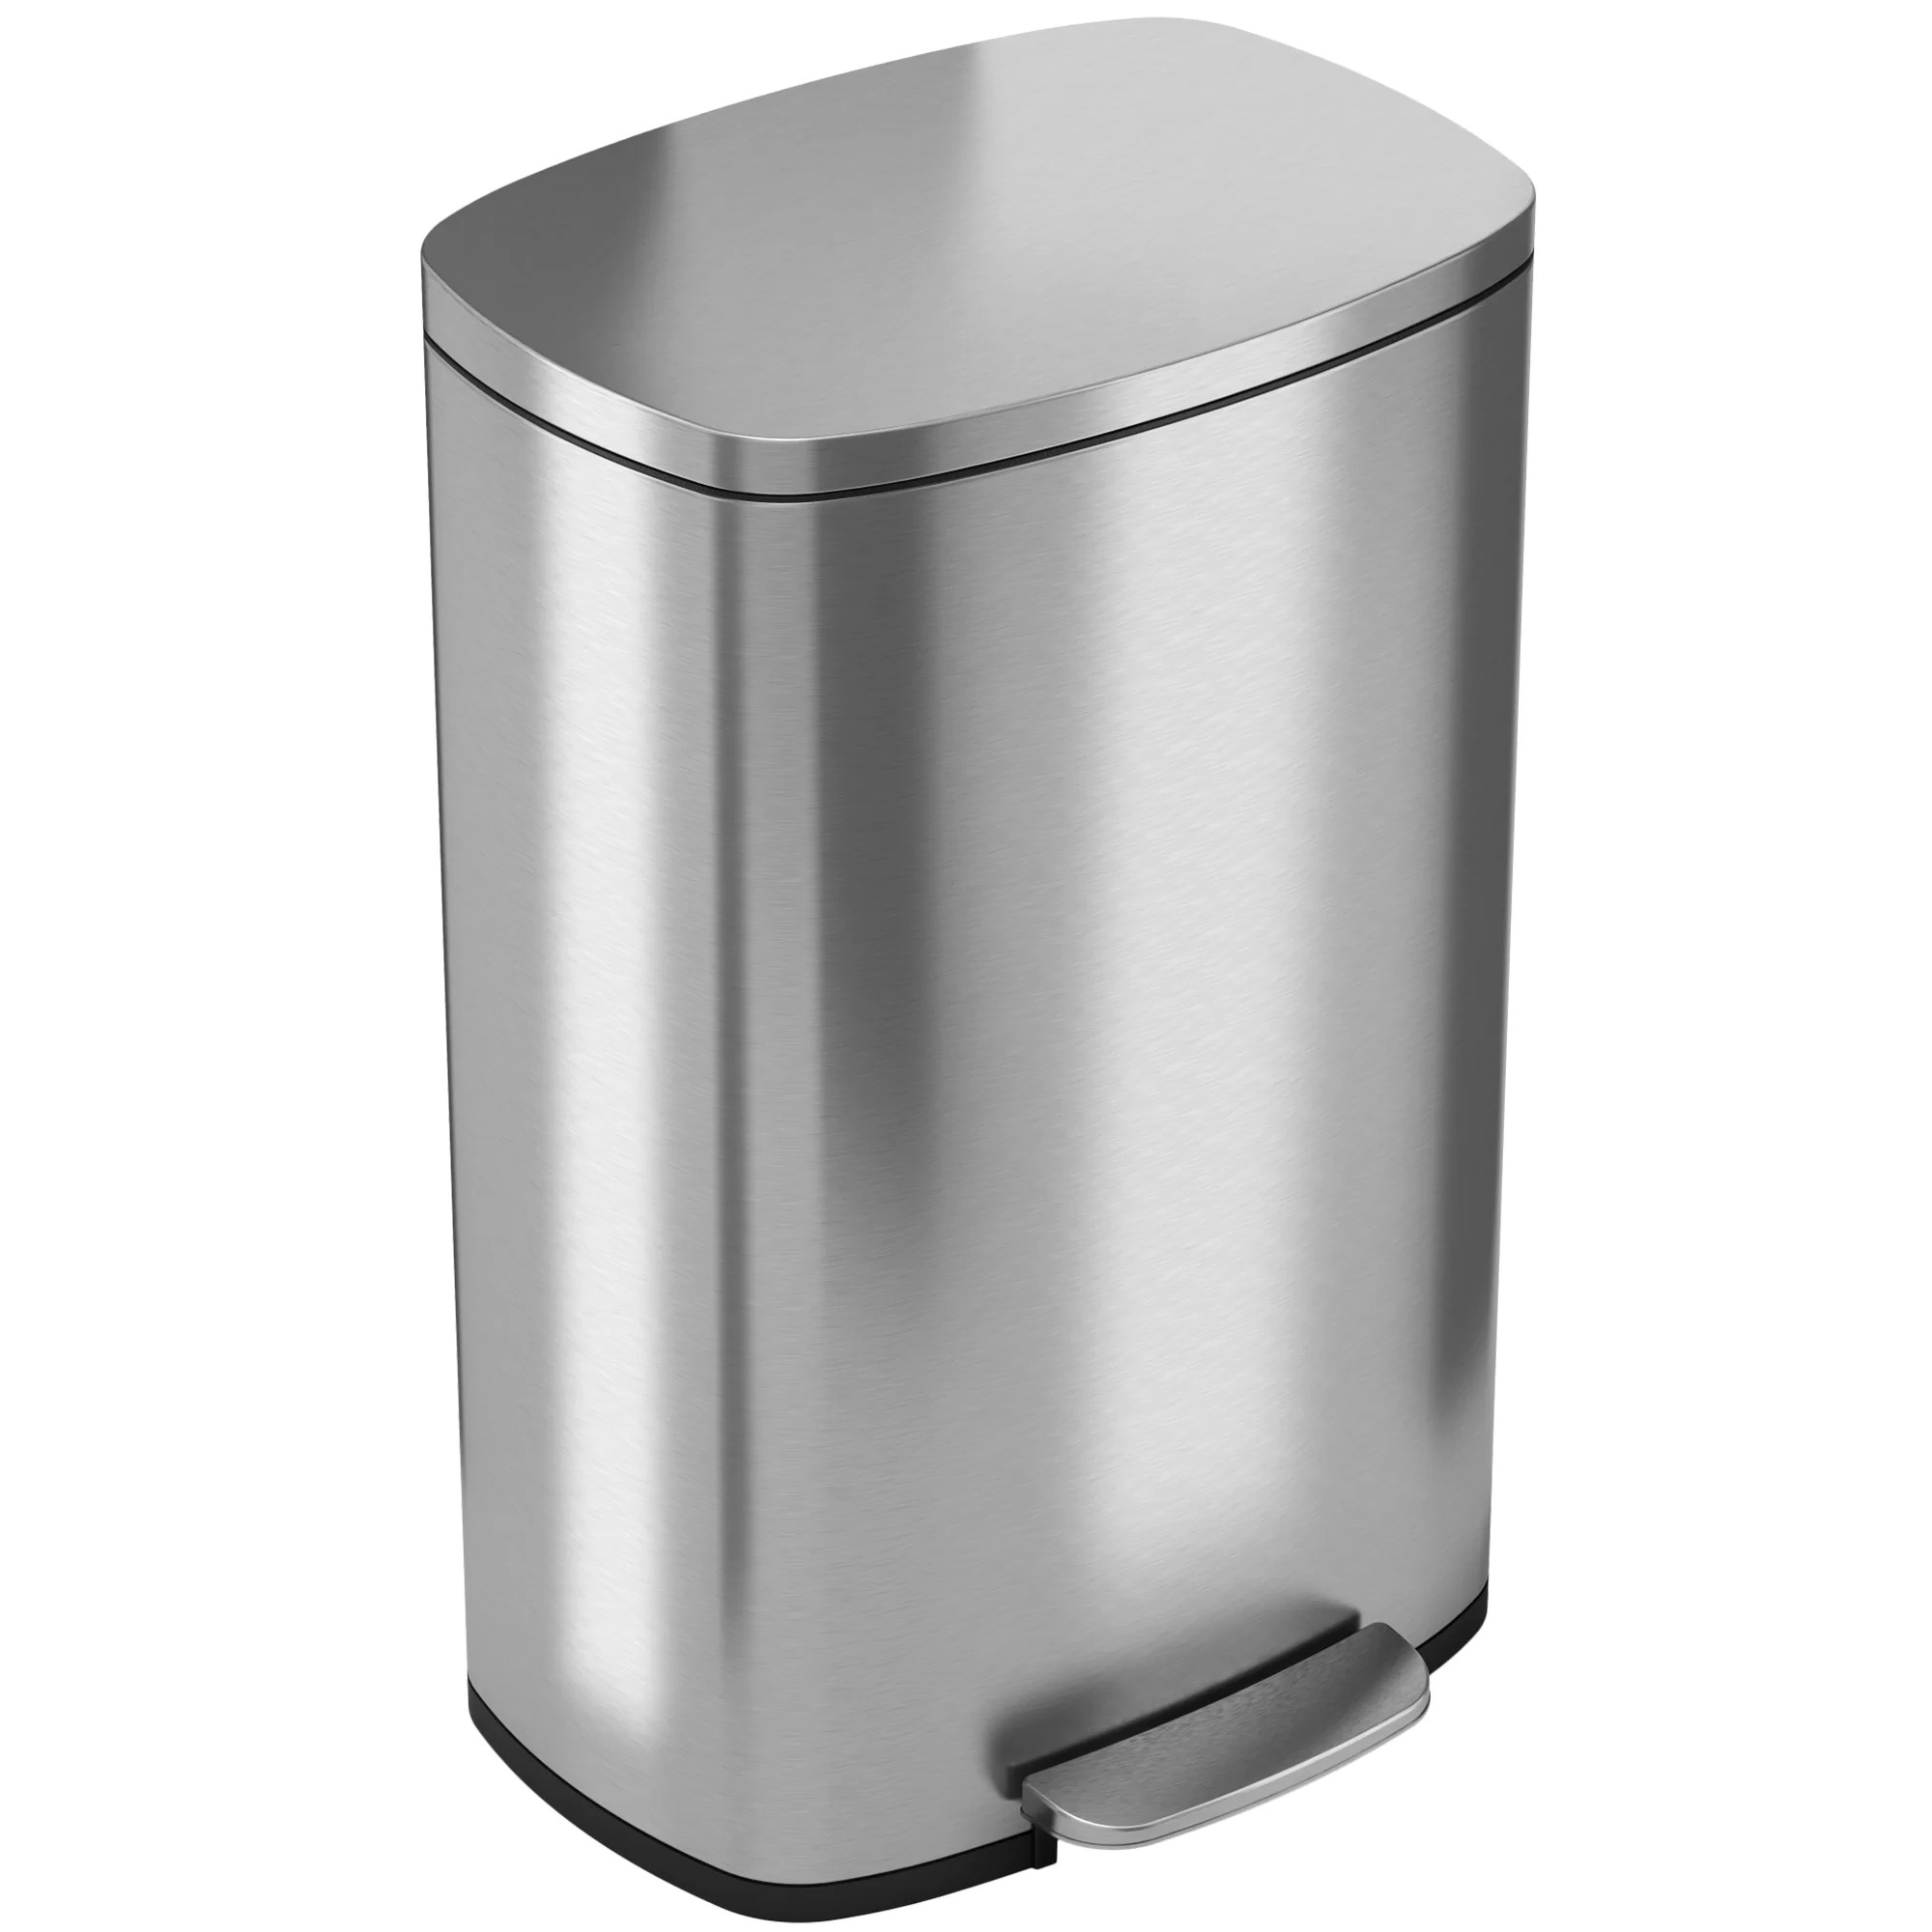 Elegant Trash Can Soft Step Stainless Steel 13 Gallon Step On Trash Can